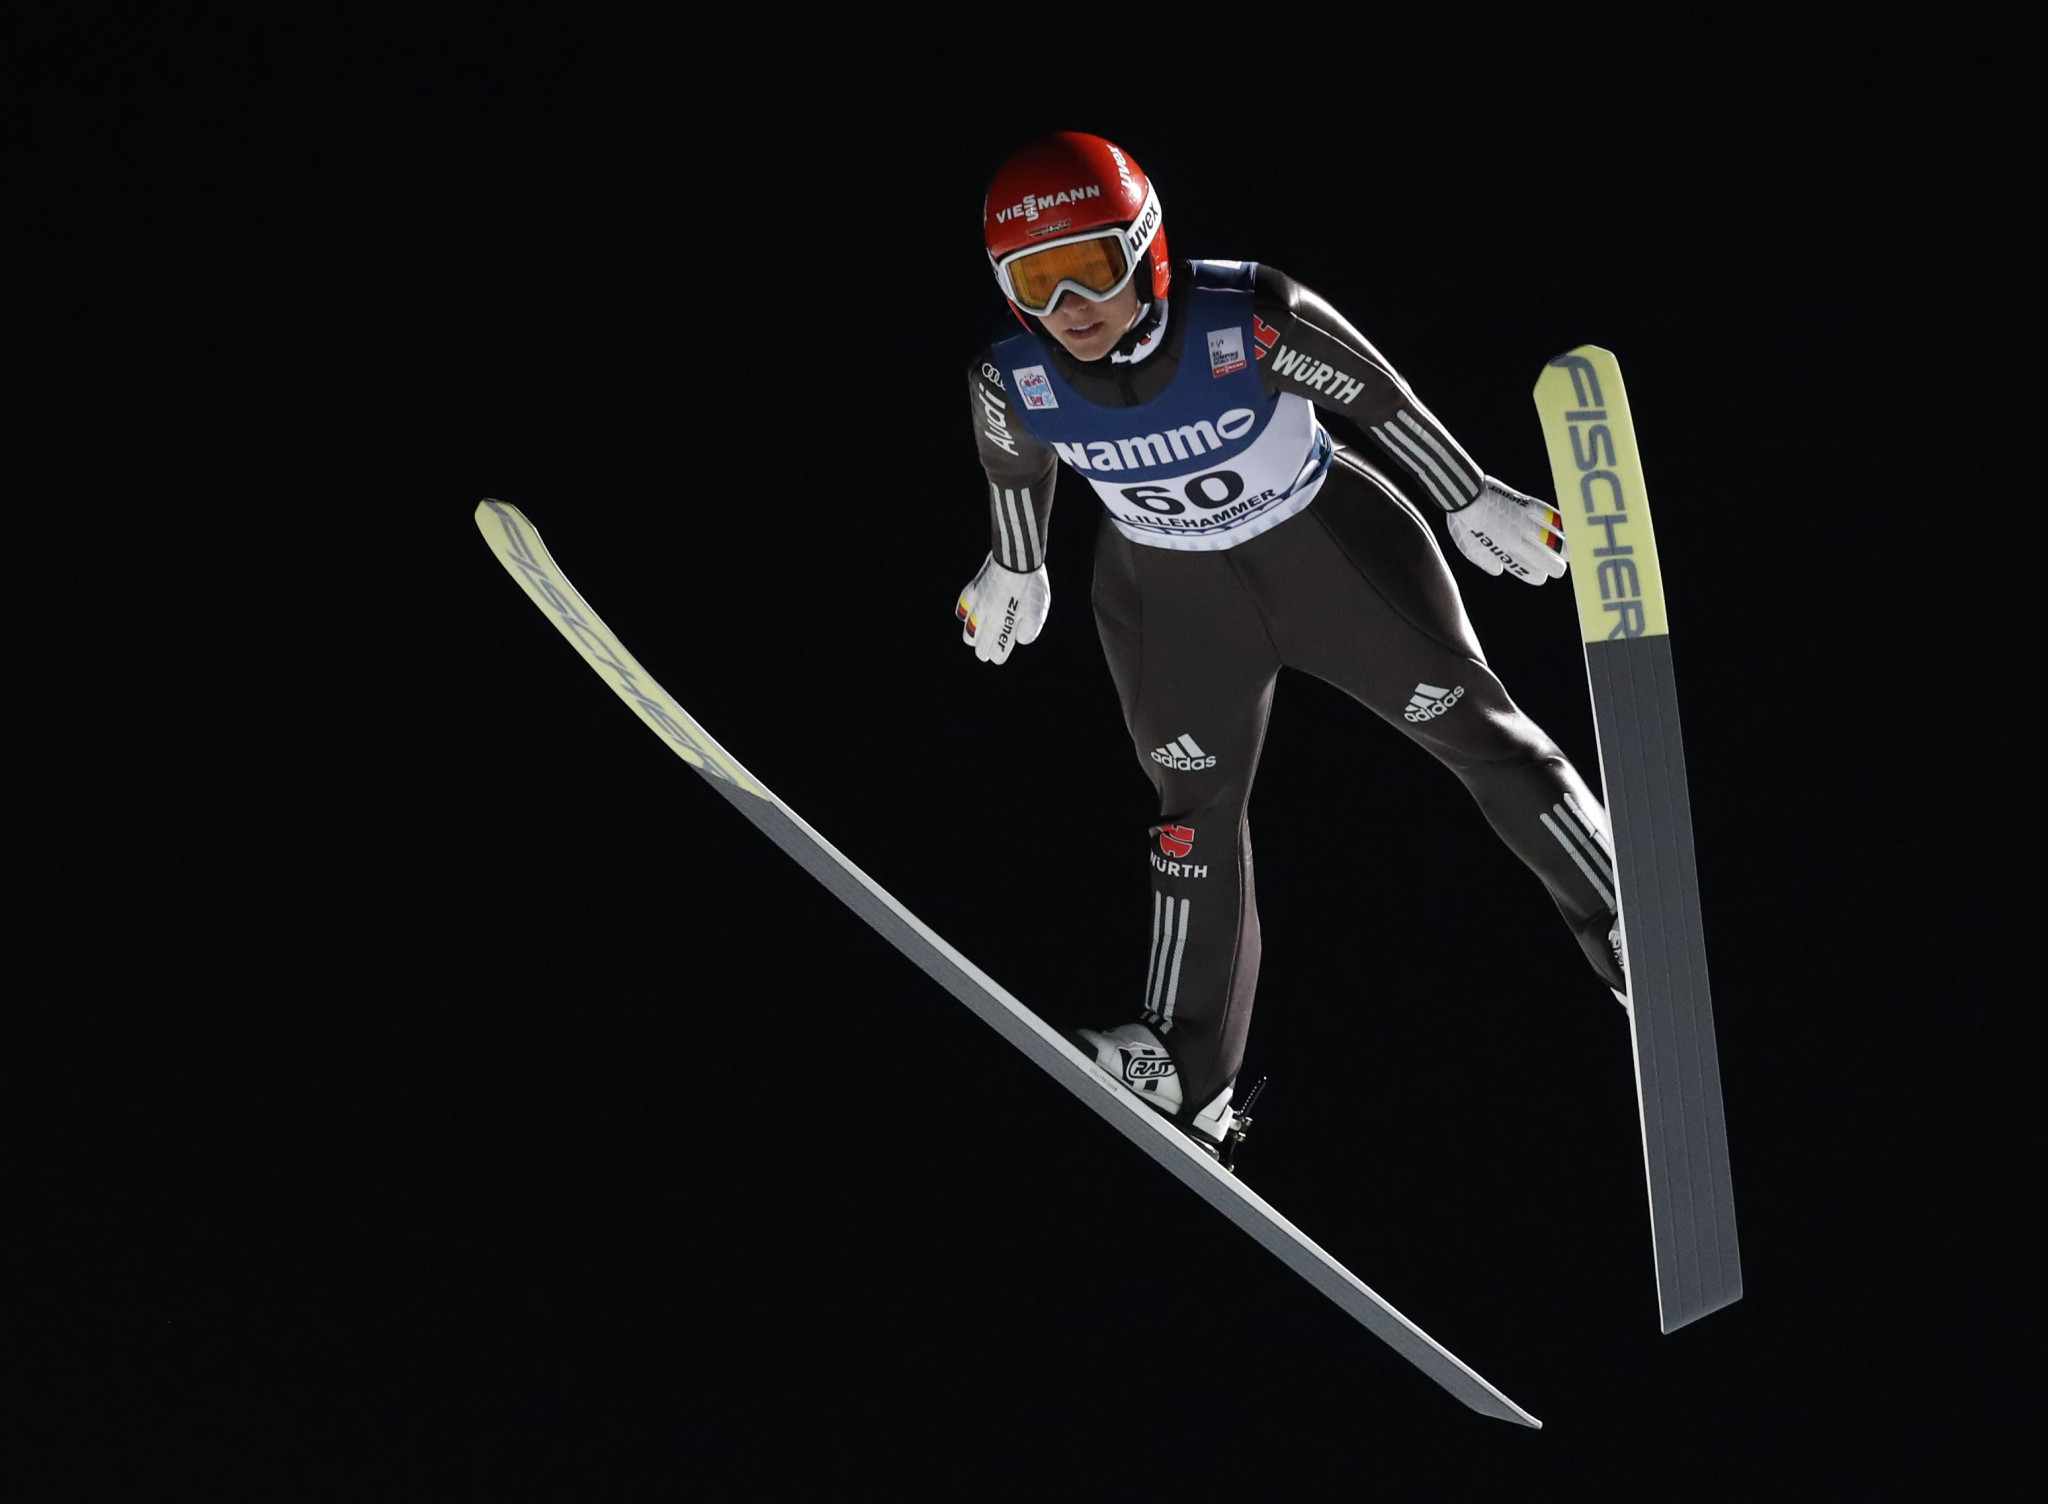 Althaus claims second straight win at FIS Ski Jumping World Cup